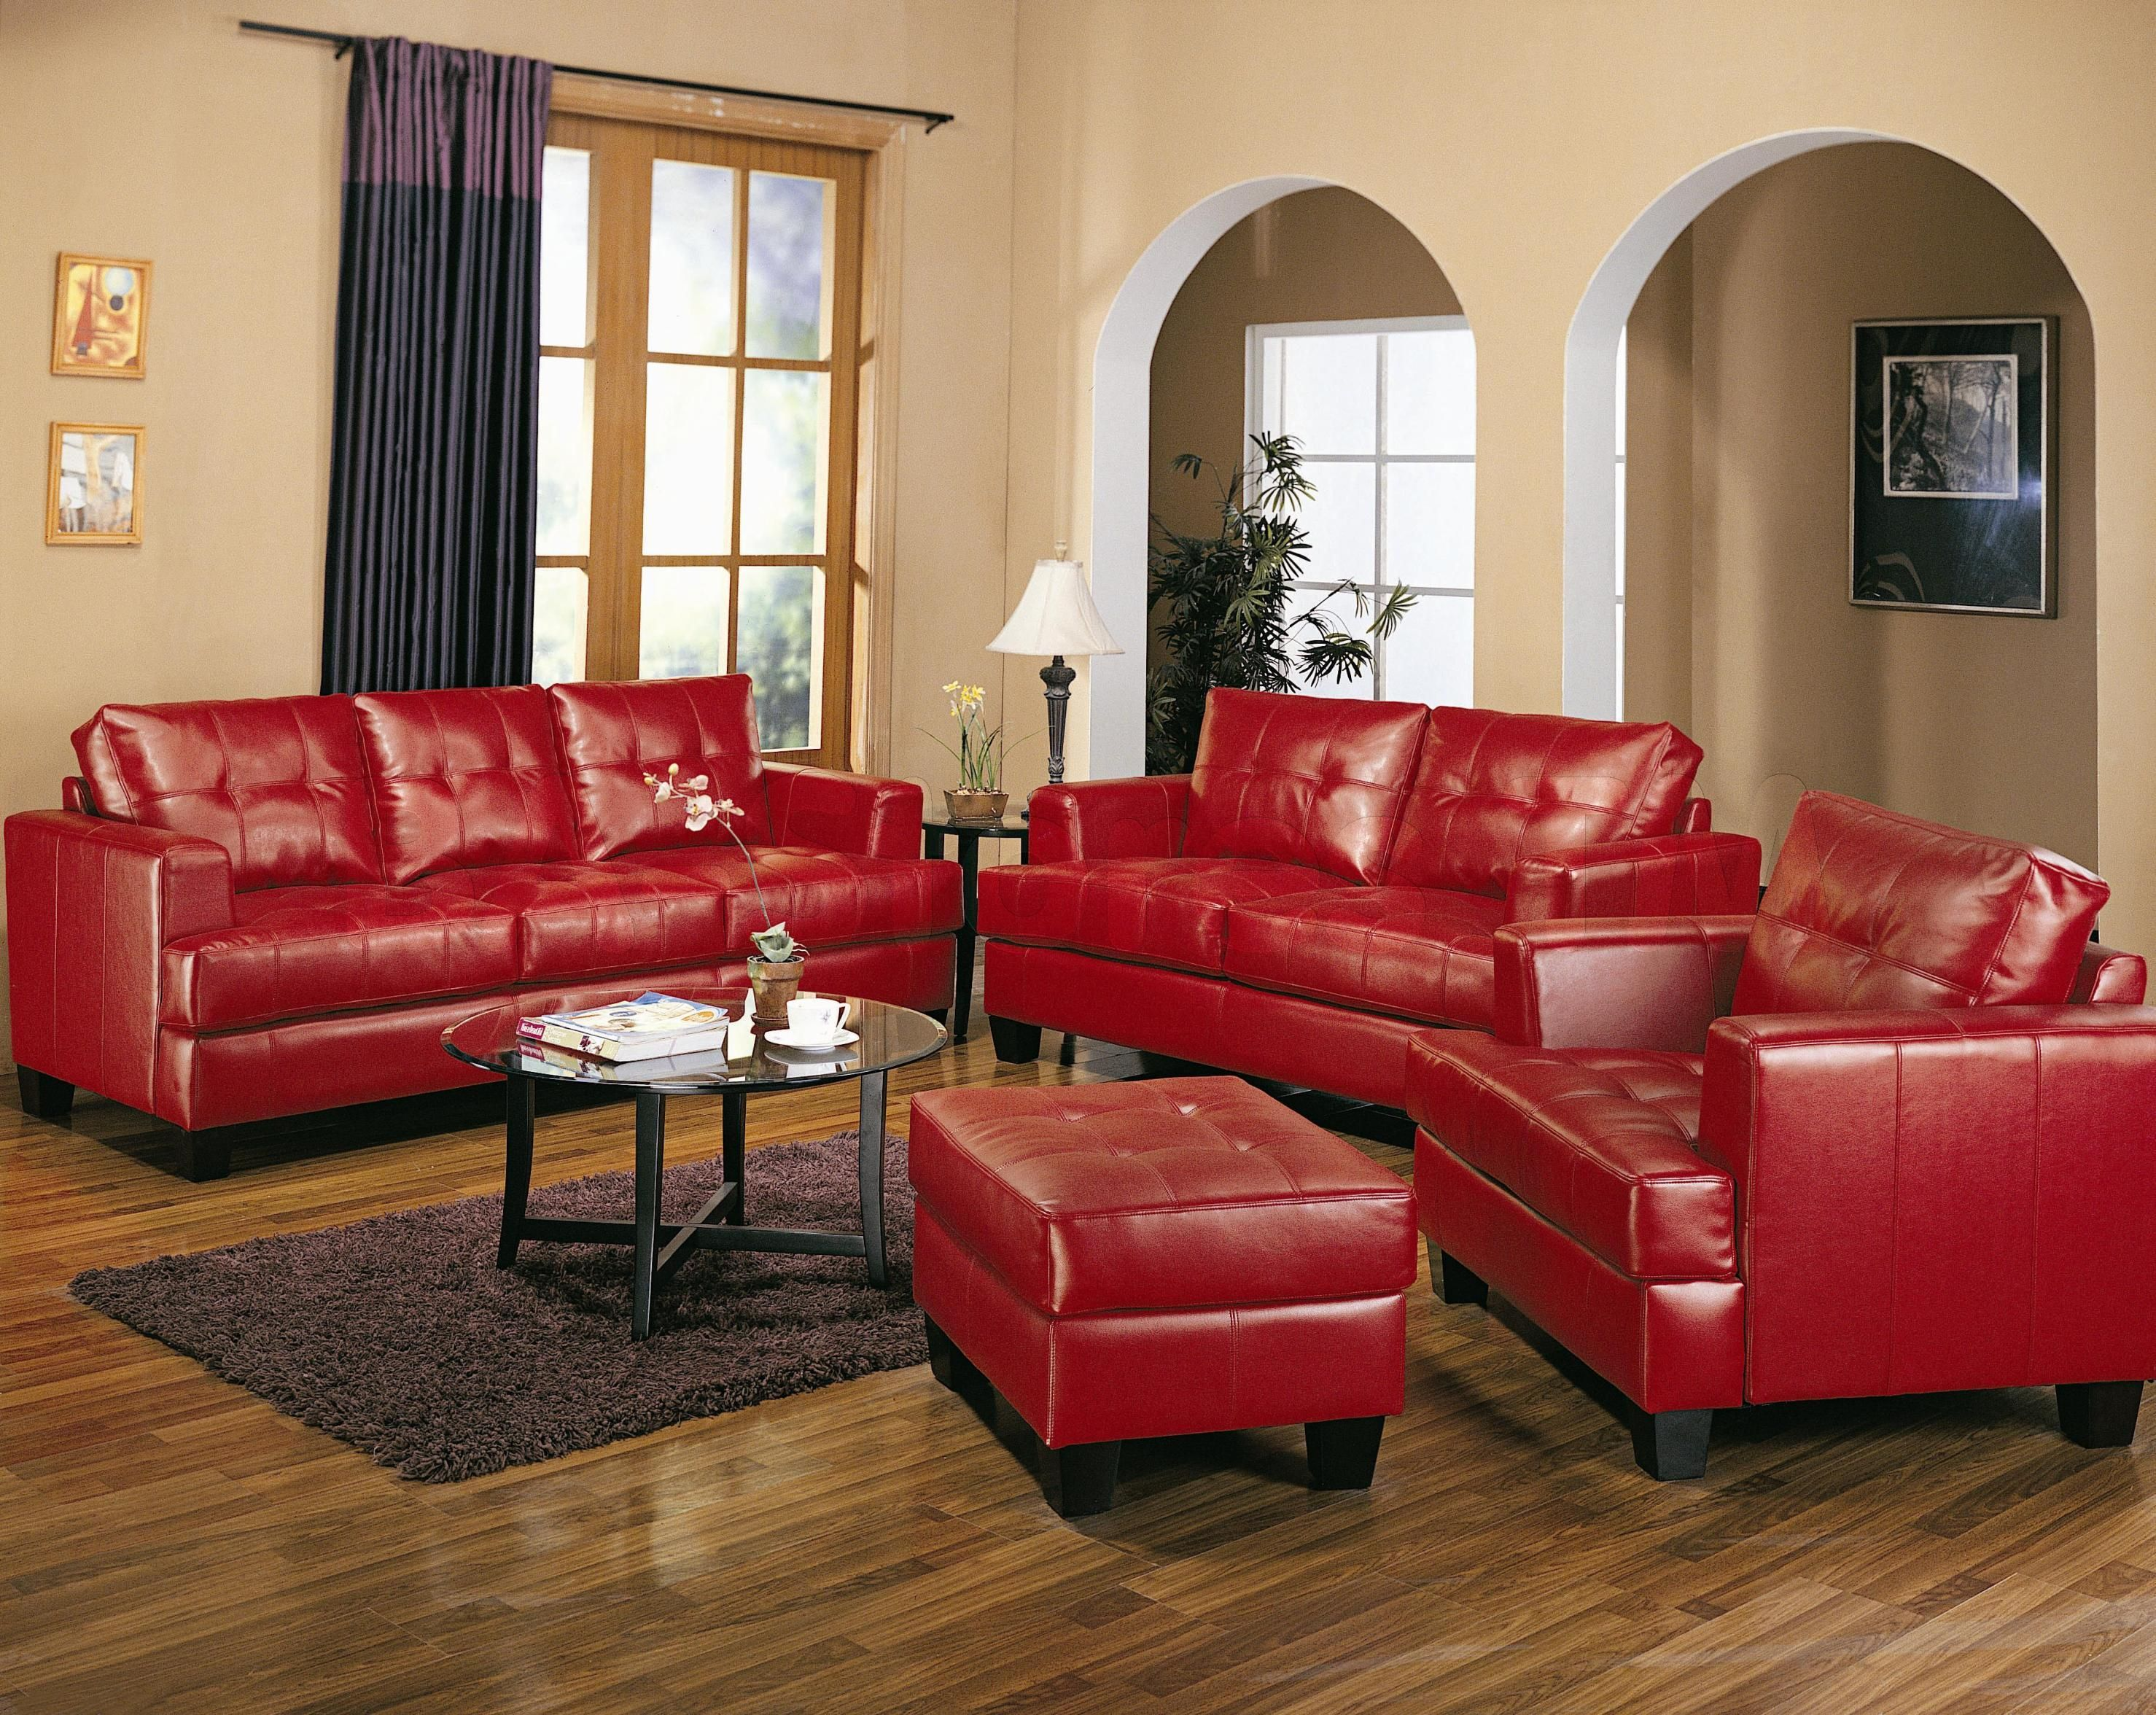 rooms with a red leather couch - google search | mamas living room